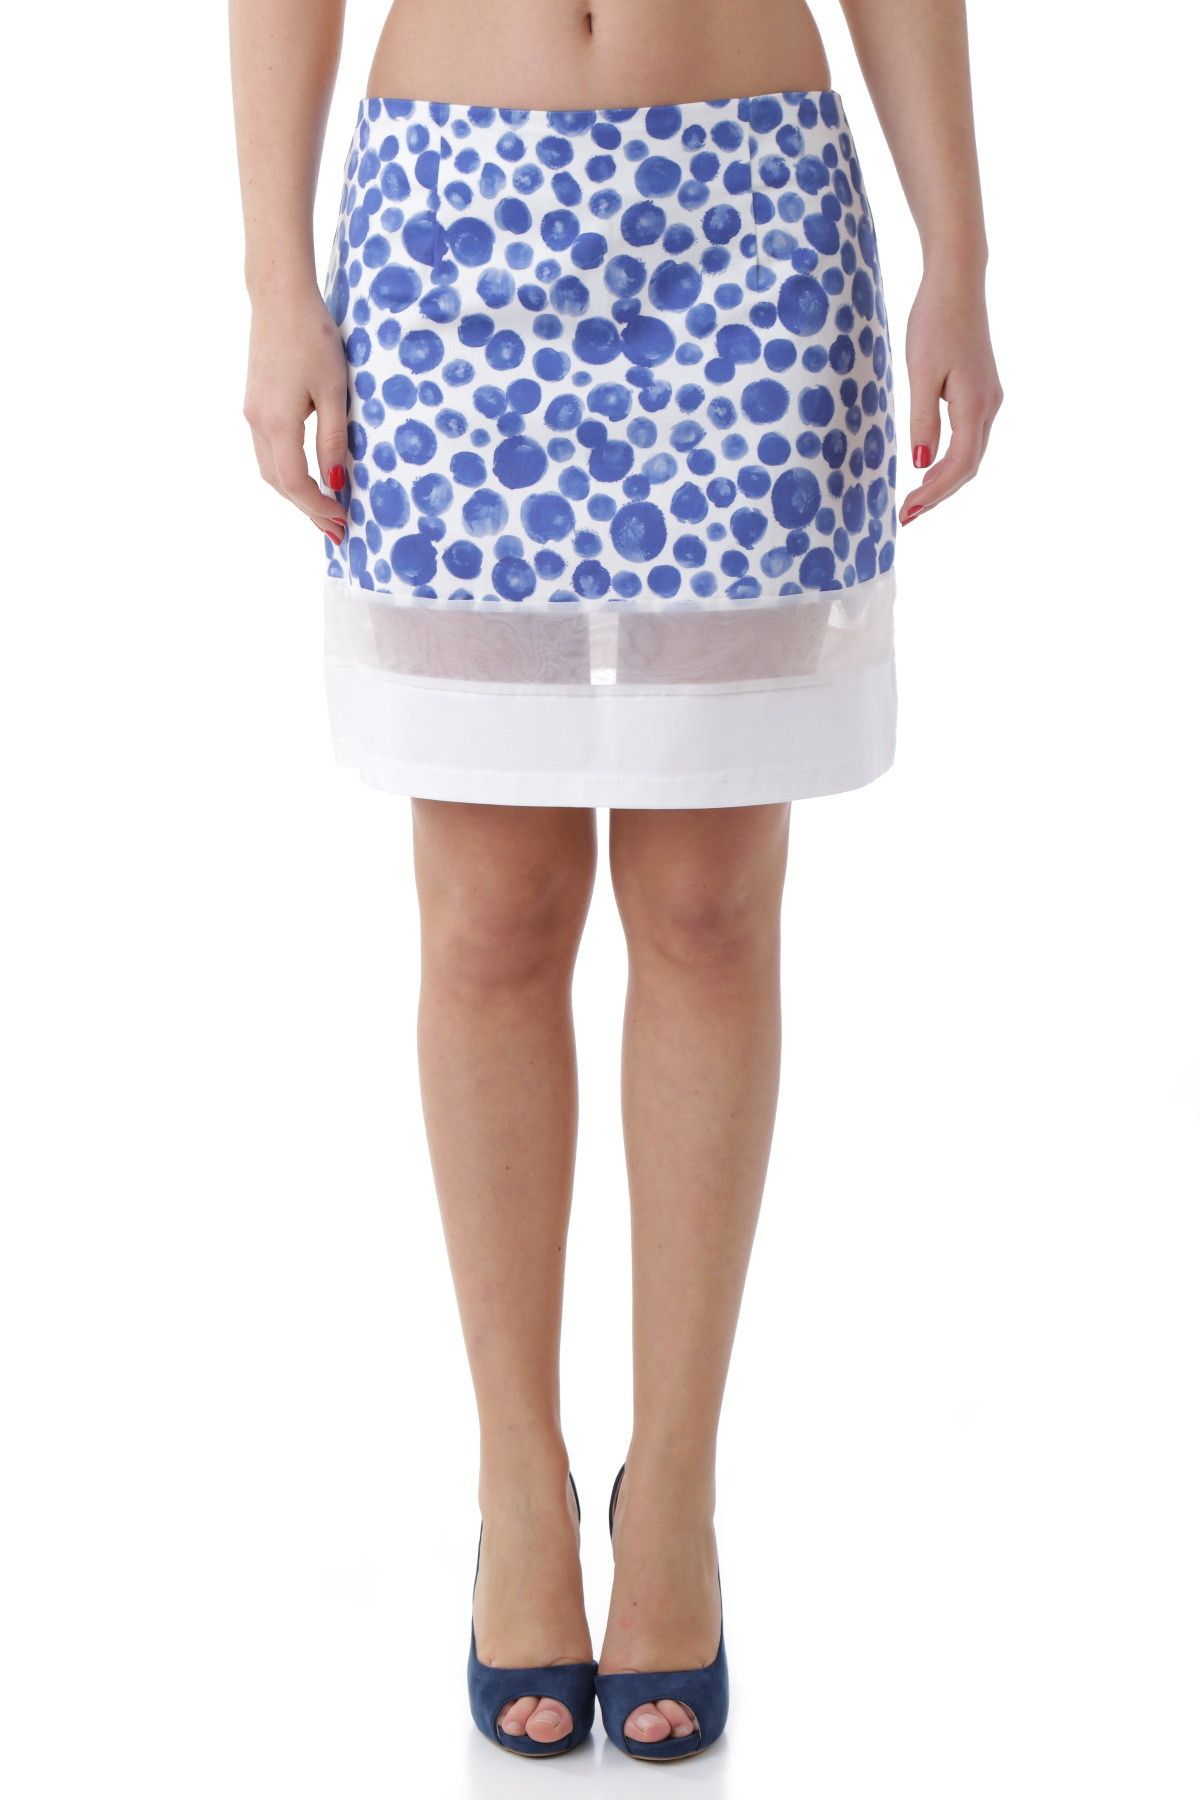 Olivia Hops Women's Skirt In Blue